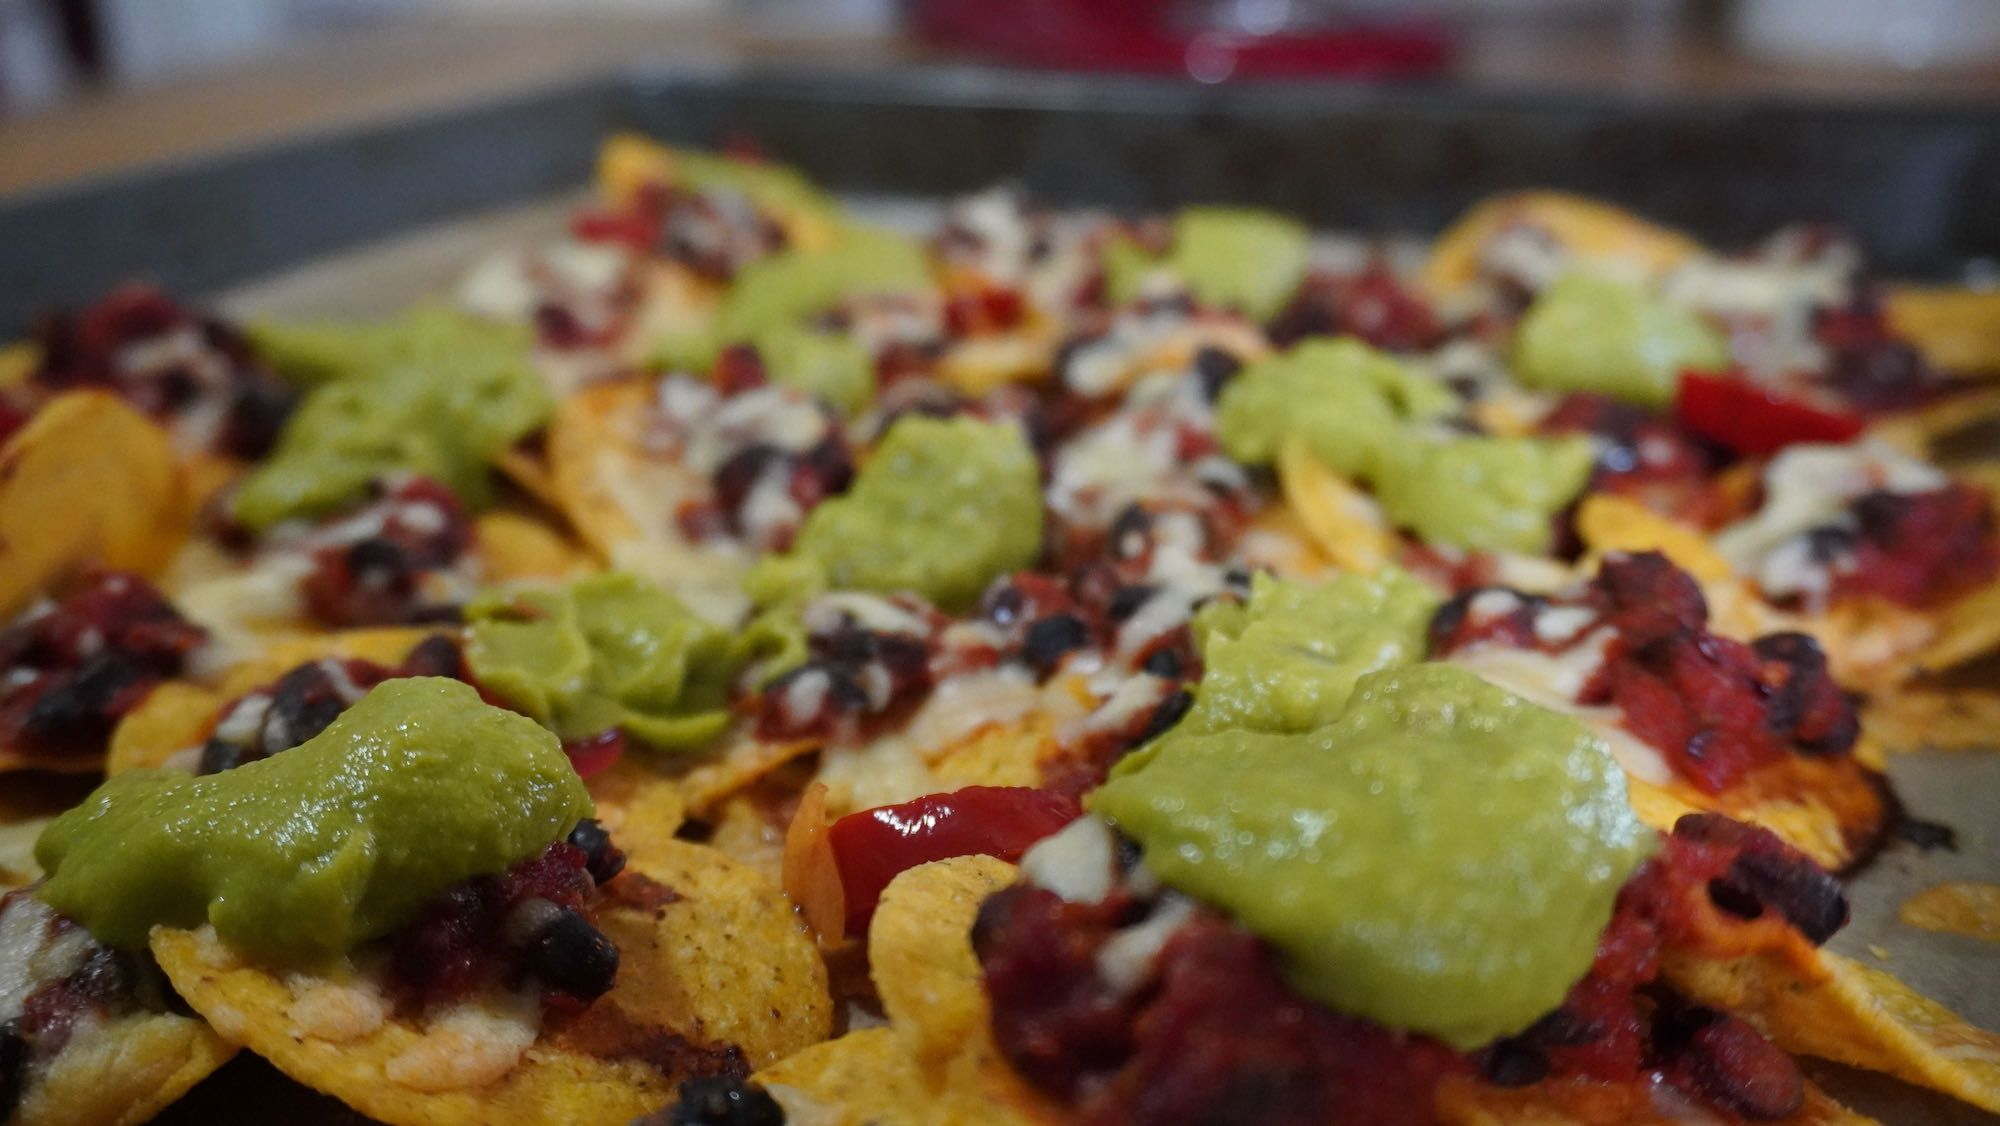 What's for Dinner? Sheet Pan Nachos